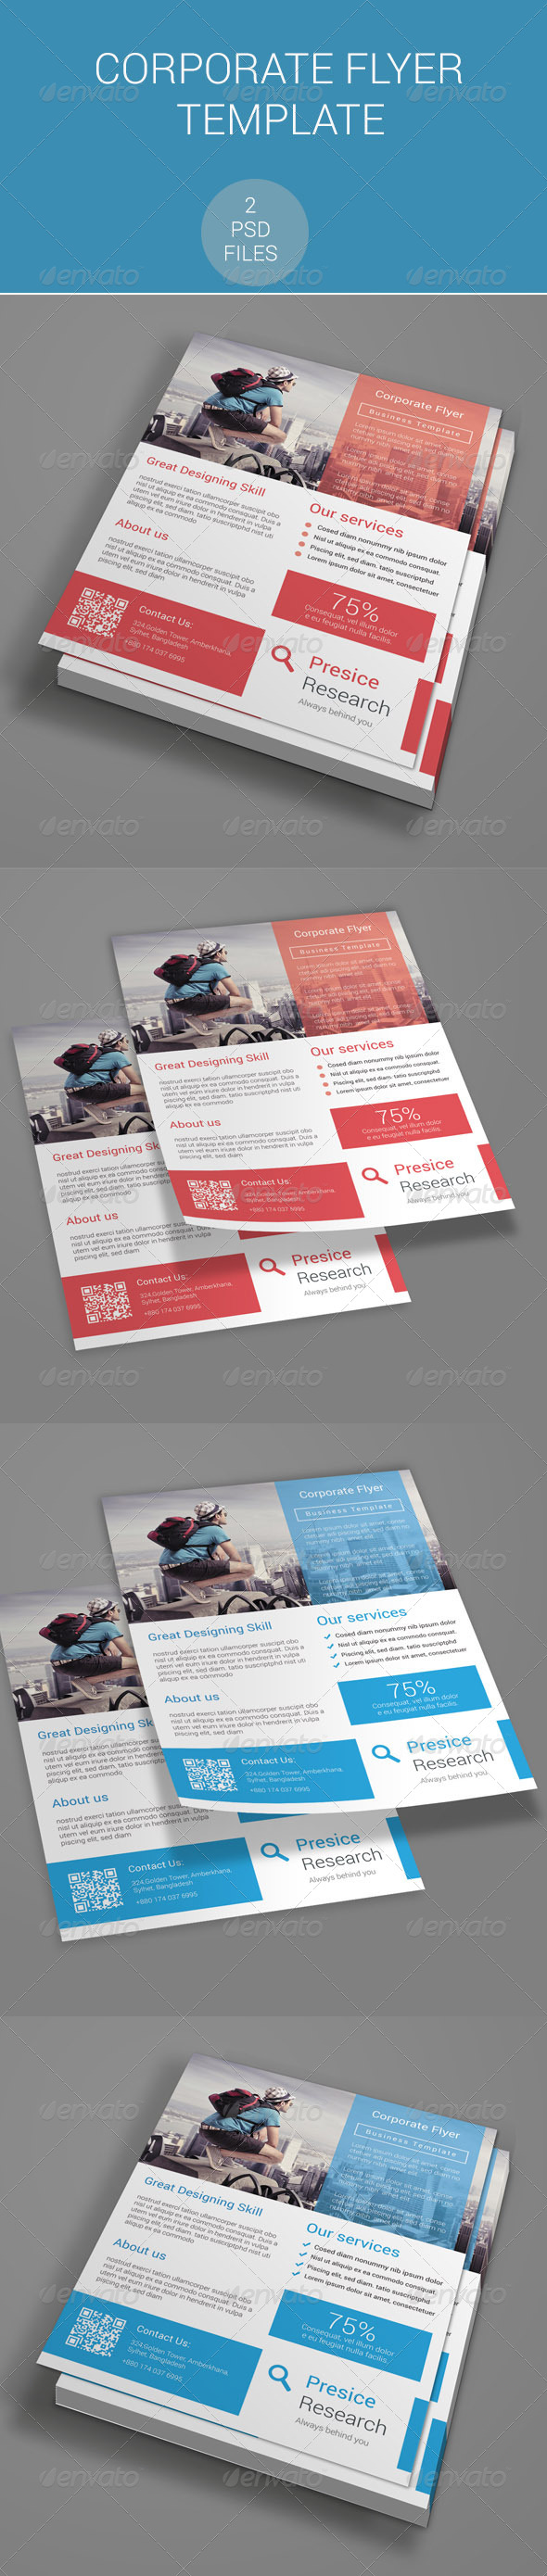 GraphicRiver Corporate Flyer Template 7651036